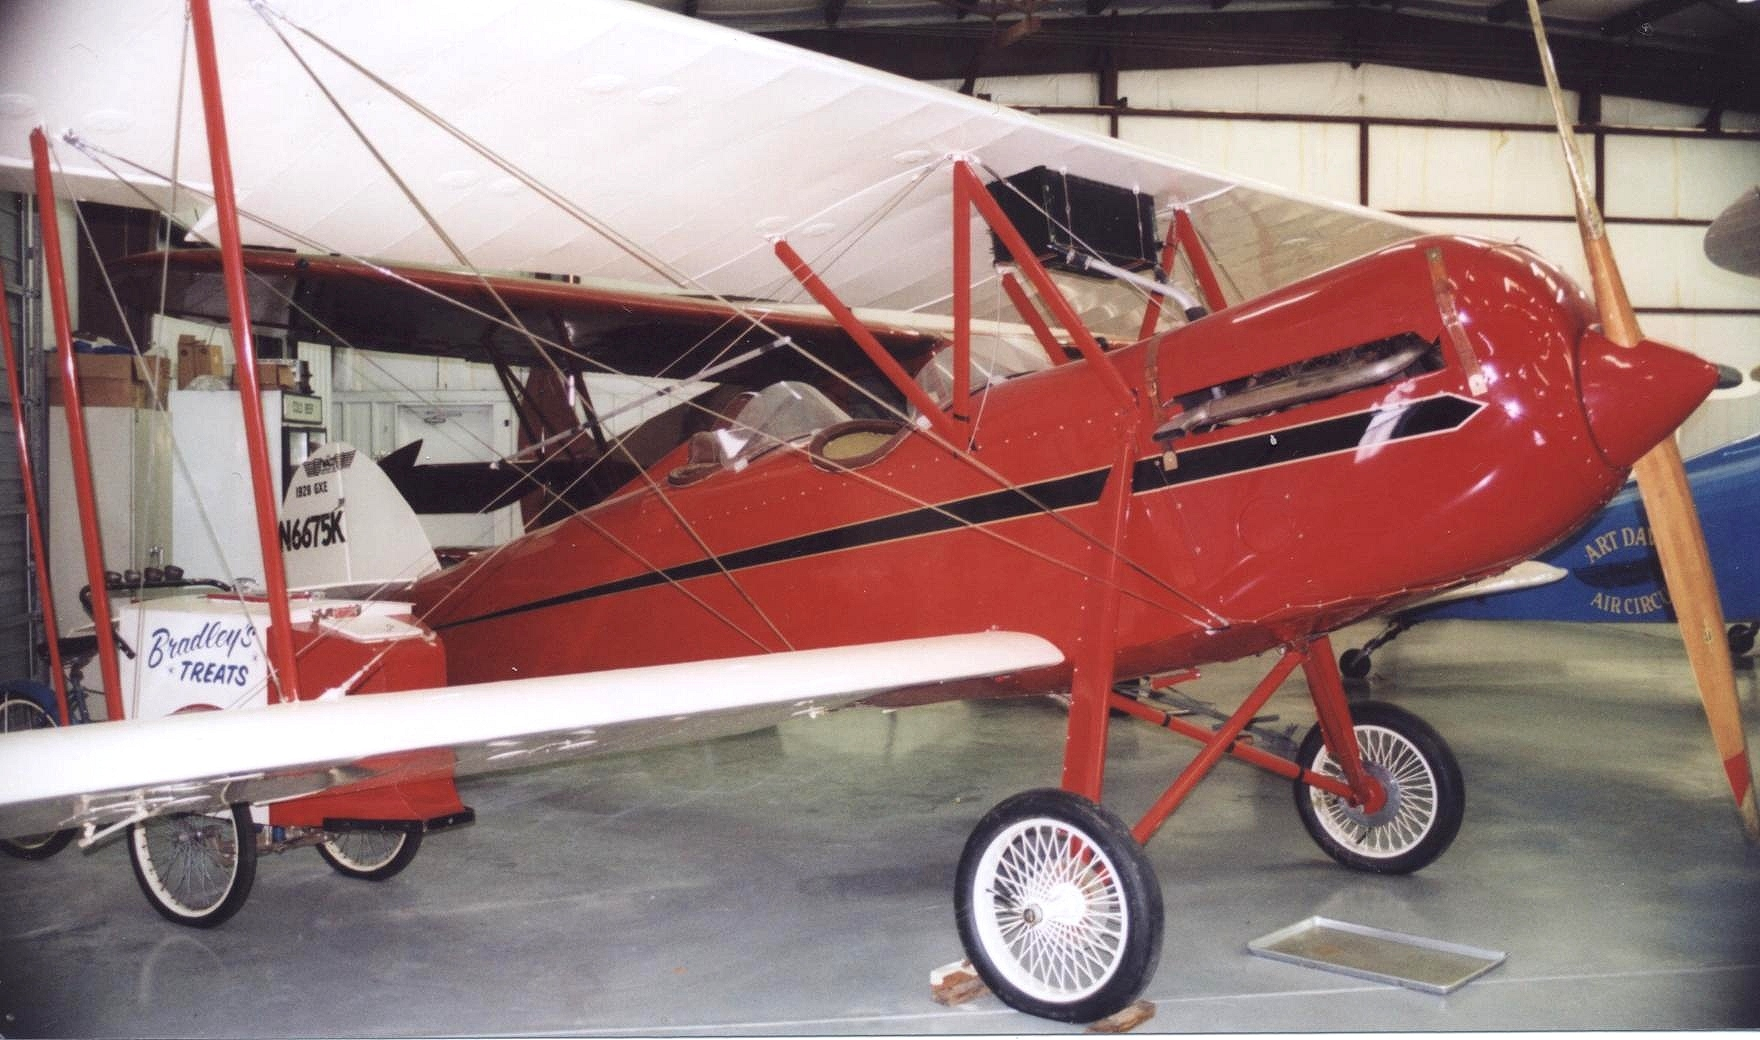 Production Factory Manufacturer Waco Aircraft Company Wikipedia